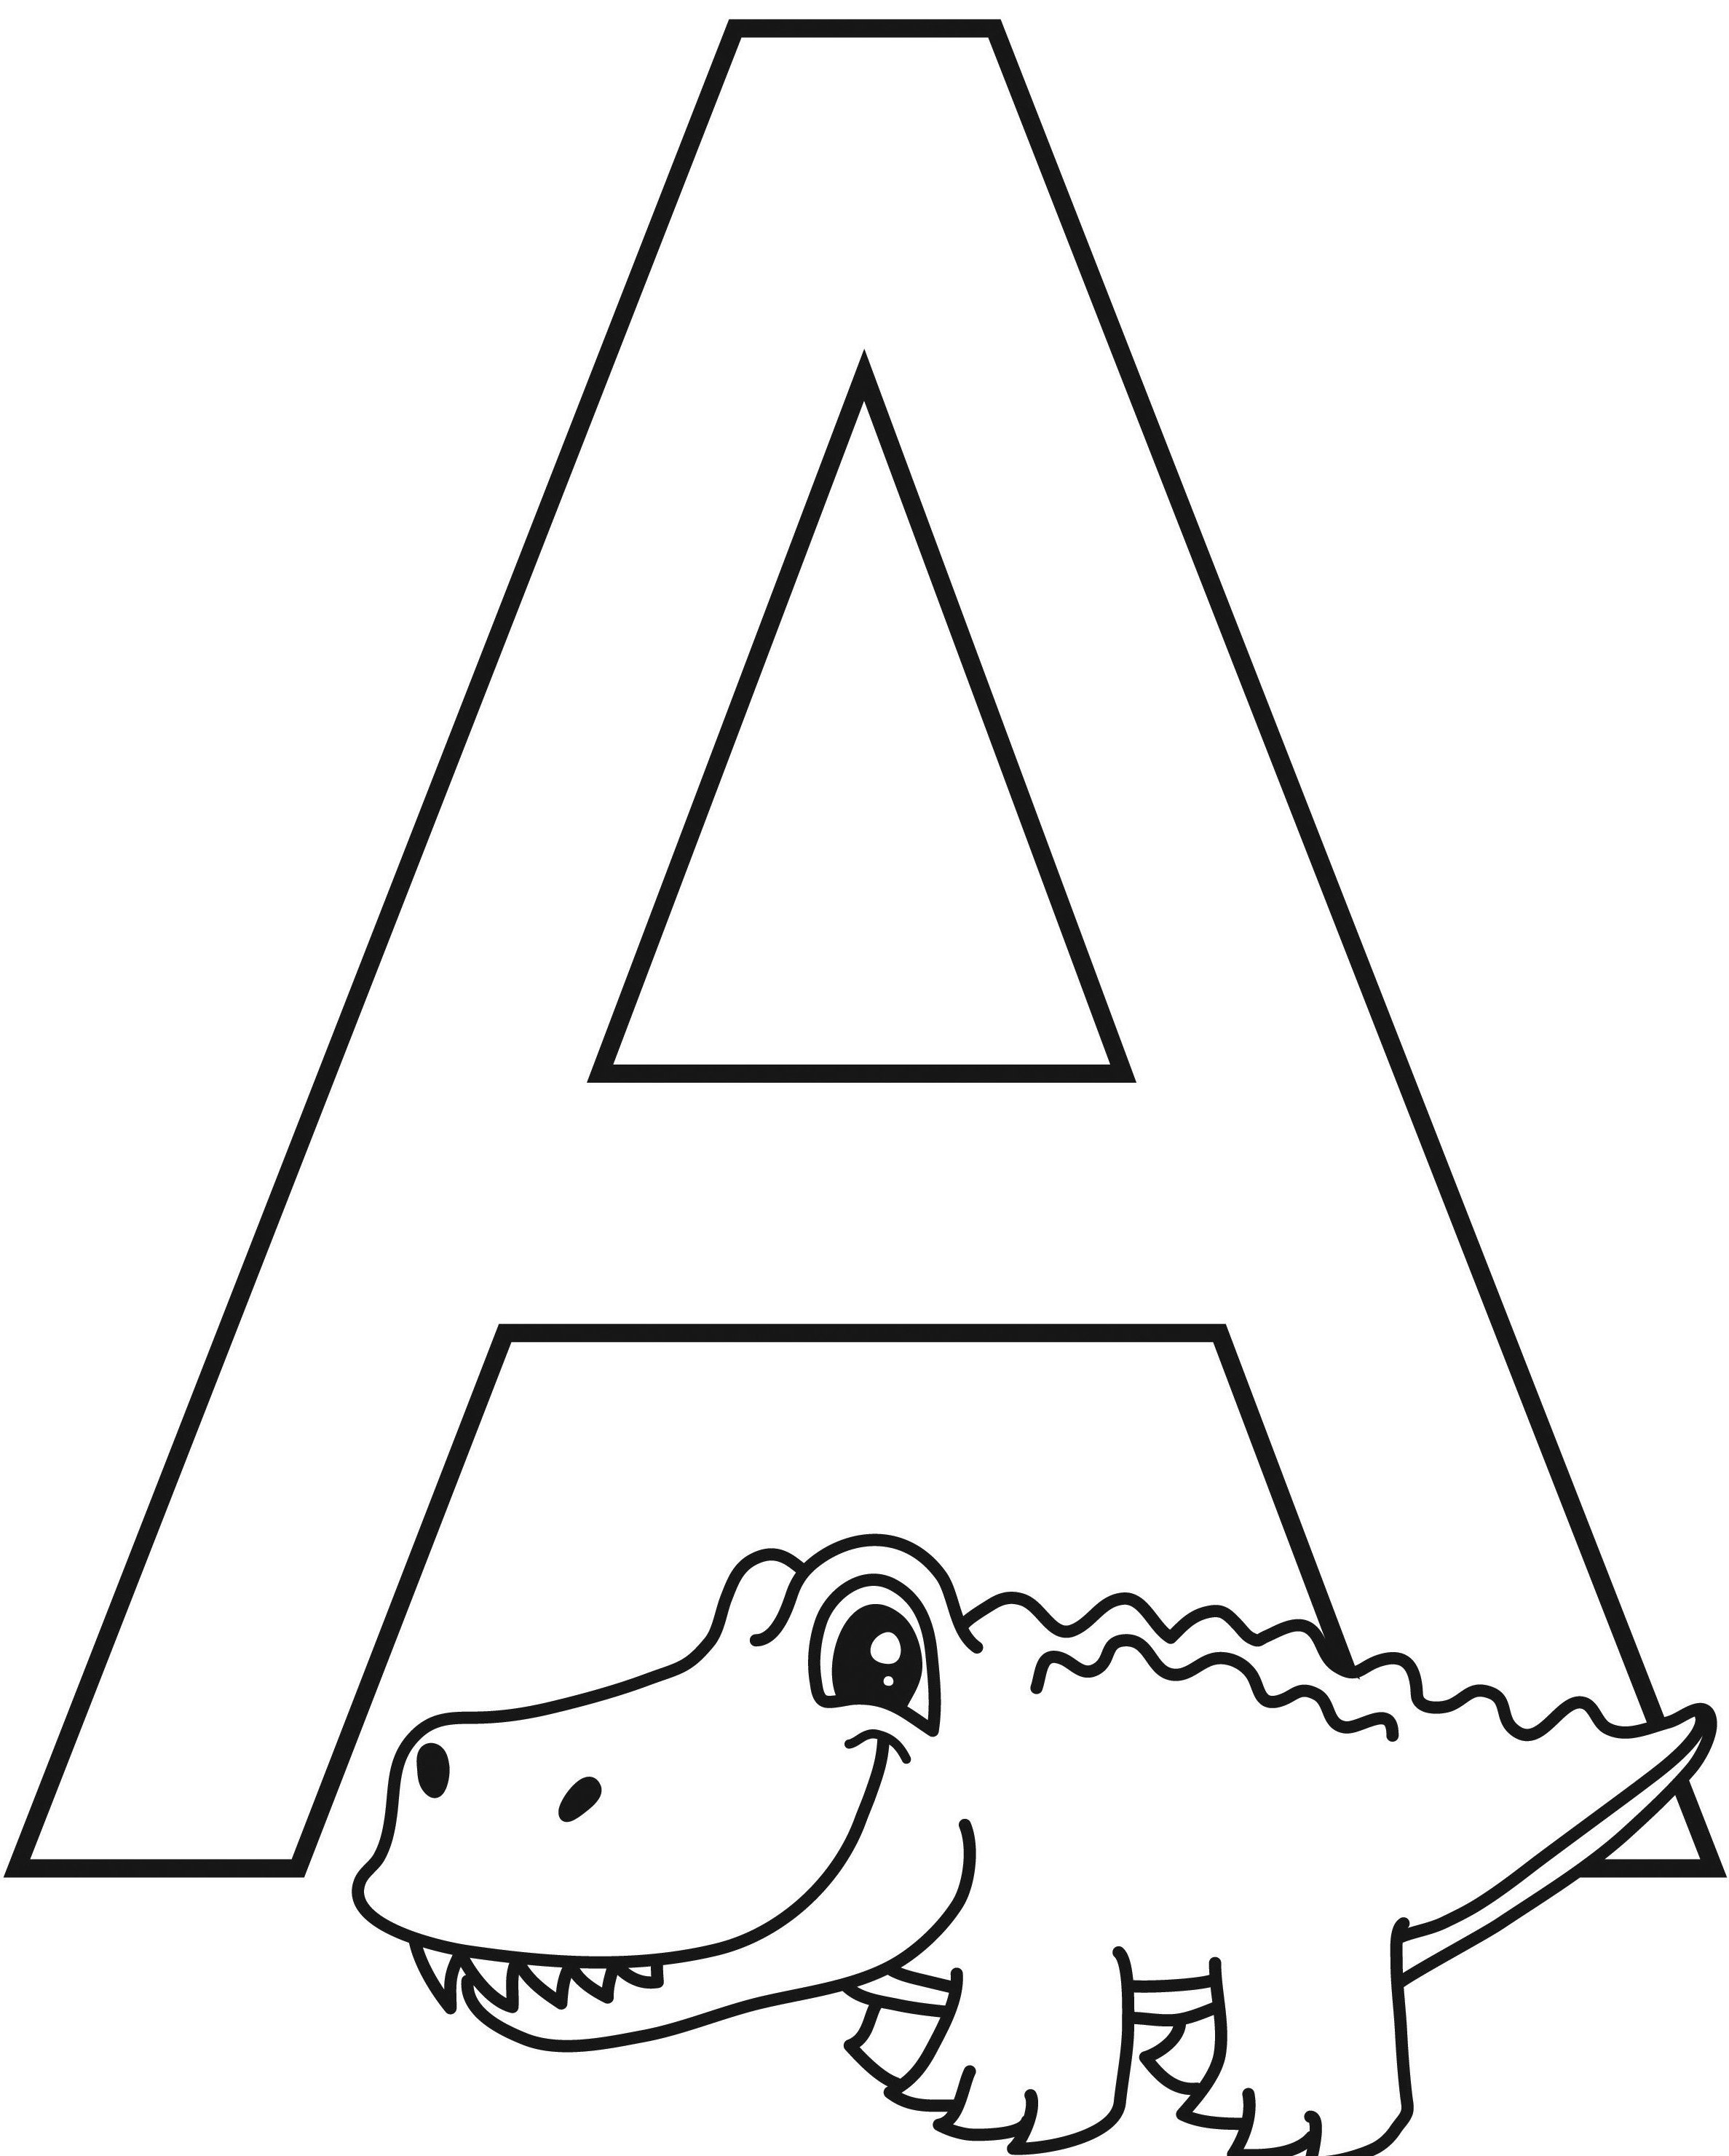 Printable Letter A Worksheets For Kindergarten